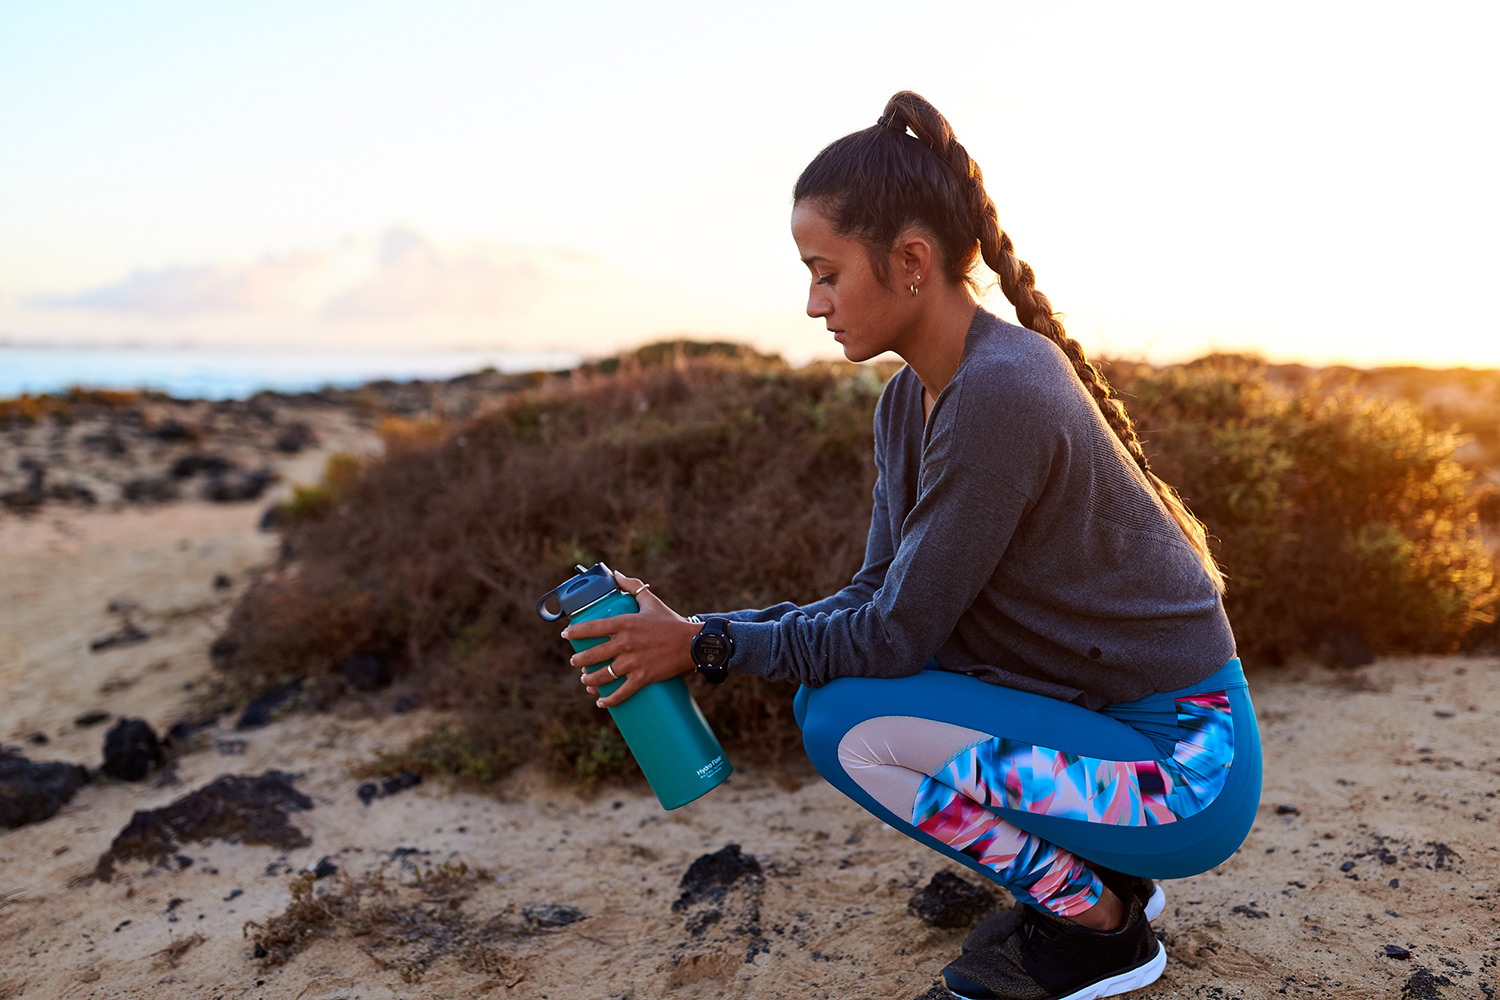 Take Your Training Anywhere in the New Sand To Sea Collection